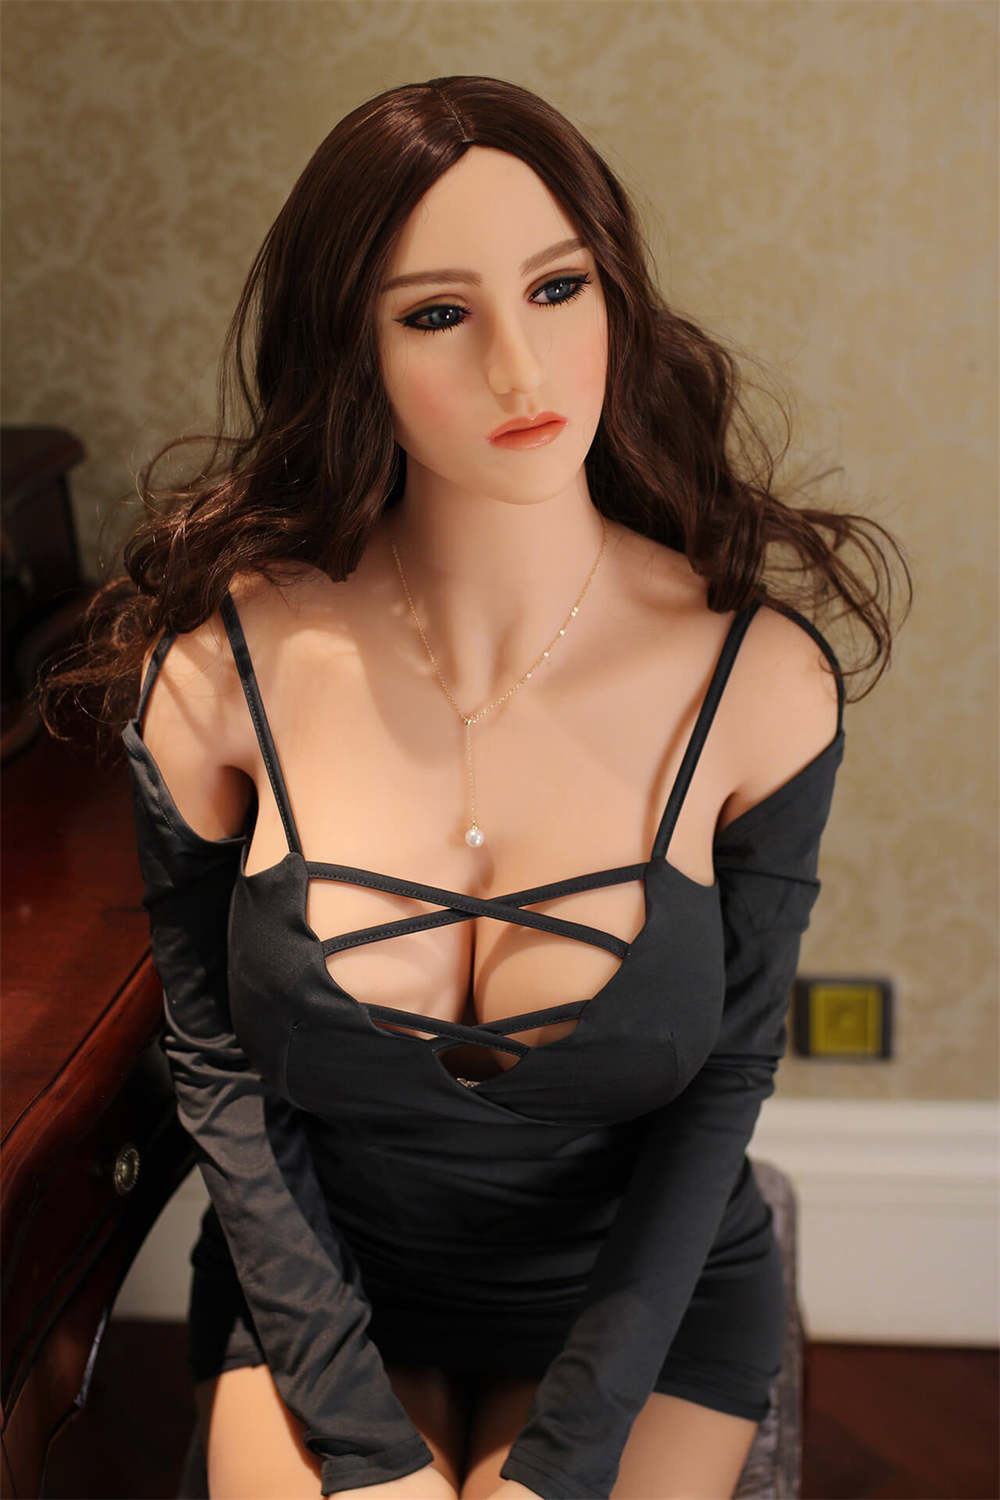 Alisa Curvy Sex Doll - Blonde Love Doll with Big Breasts and Butt